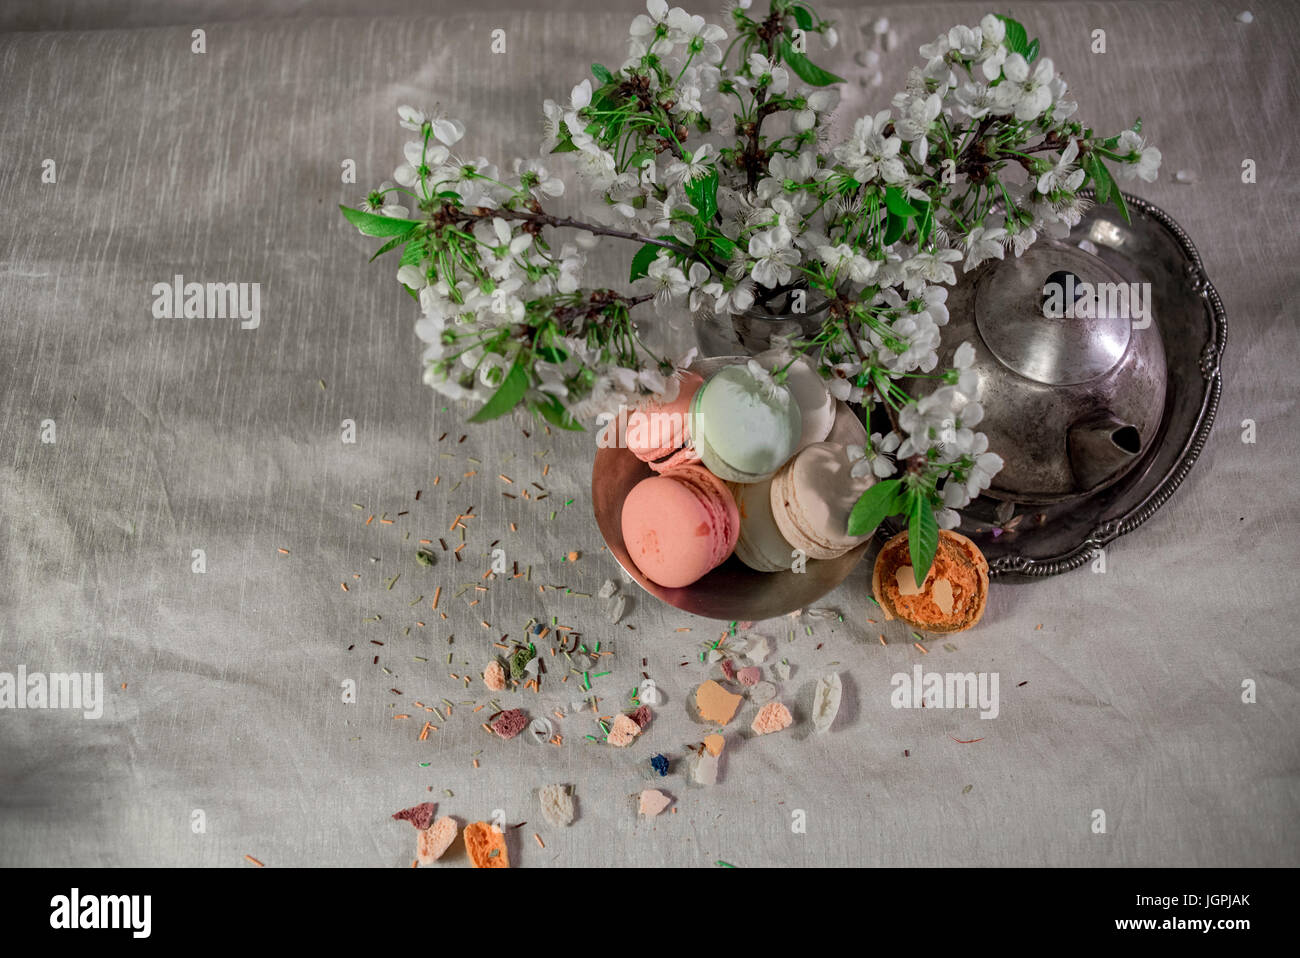 Multicolor macaroons on a table with eastern vase and cherry branch in blossom - Stock Image